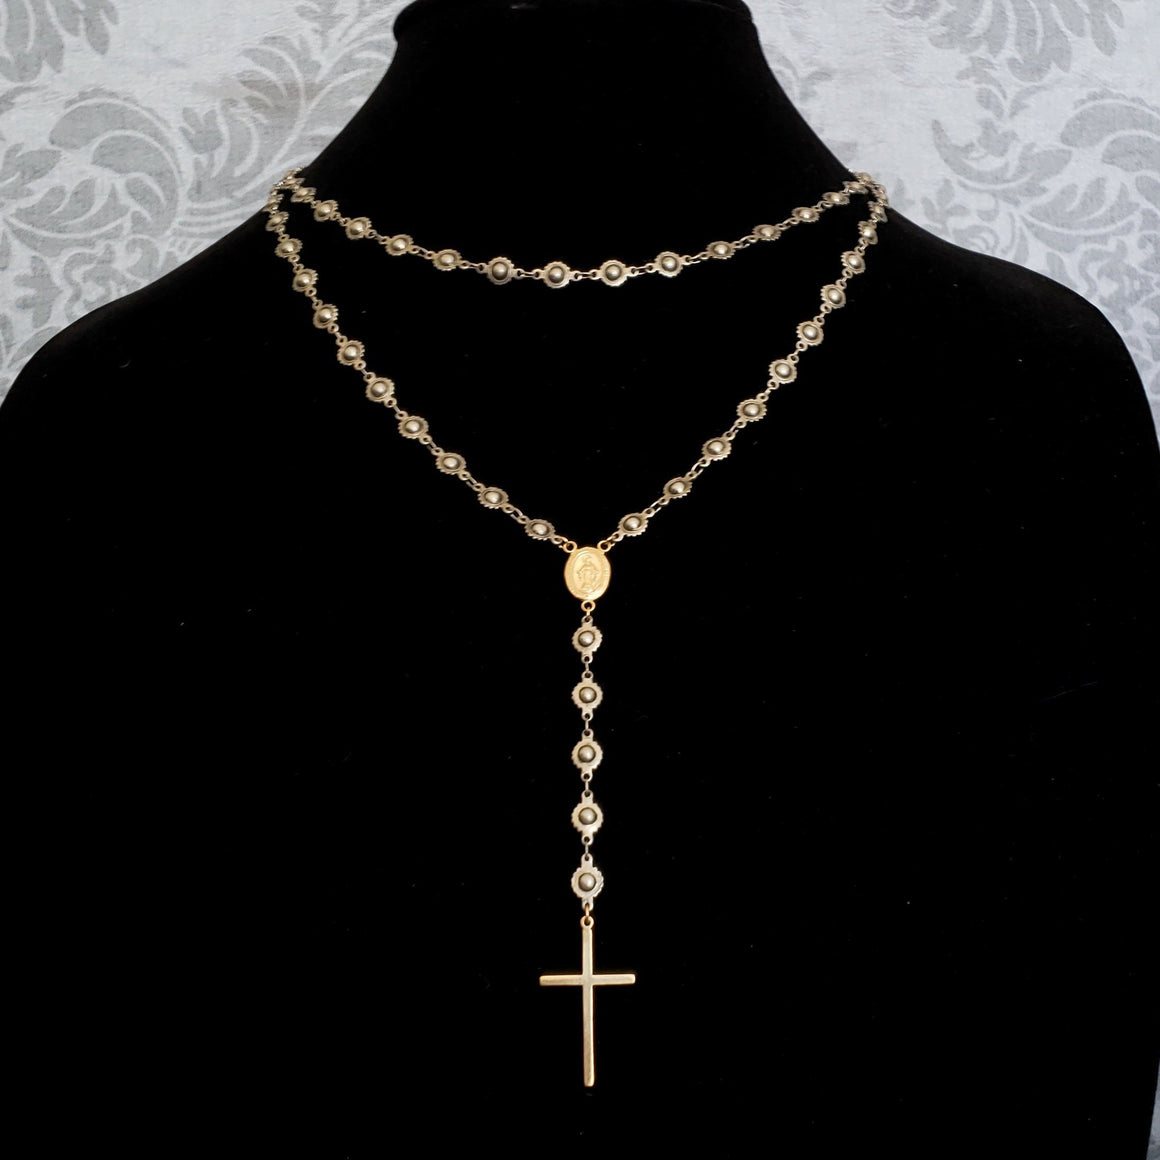 Silver and 14K GOLD Fill Rosary Necklace, Extra Long Silver Chain Gold Cross Rosary, Wrap Around Long Chain, Long Gold Cross Necklace - ViaLove Designs